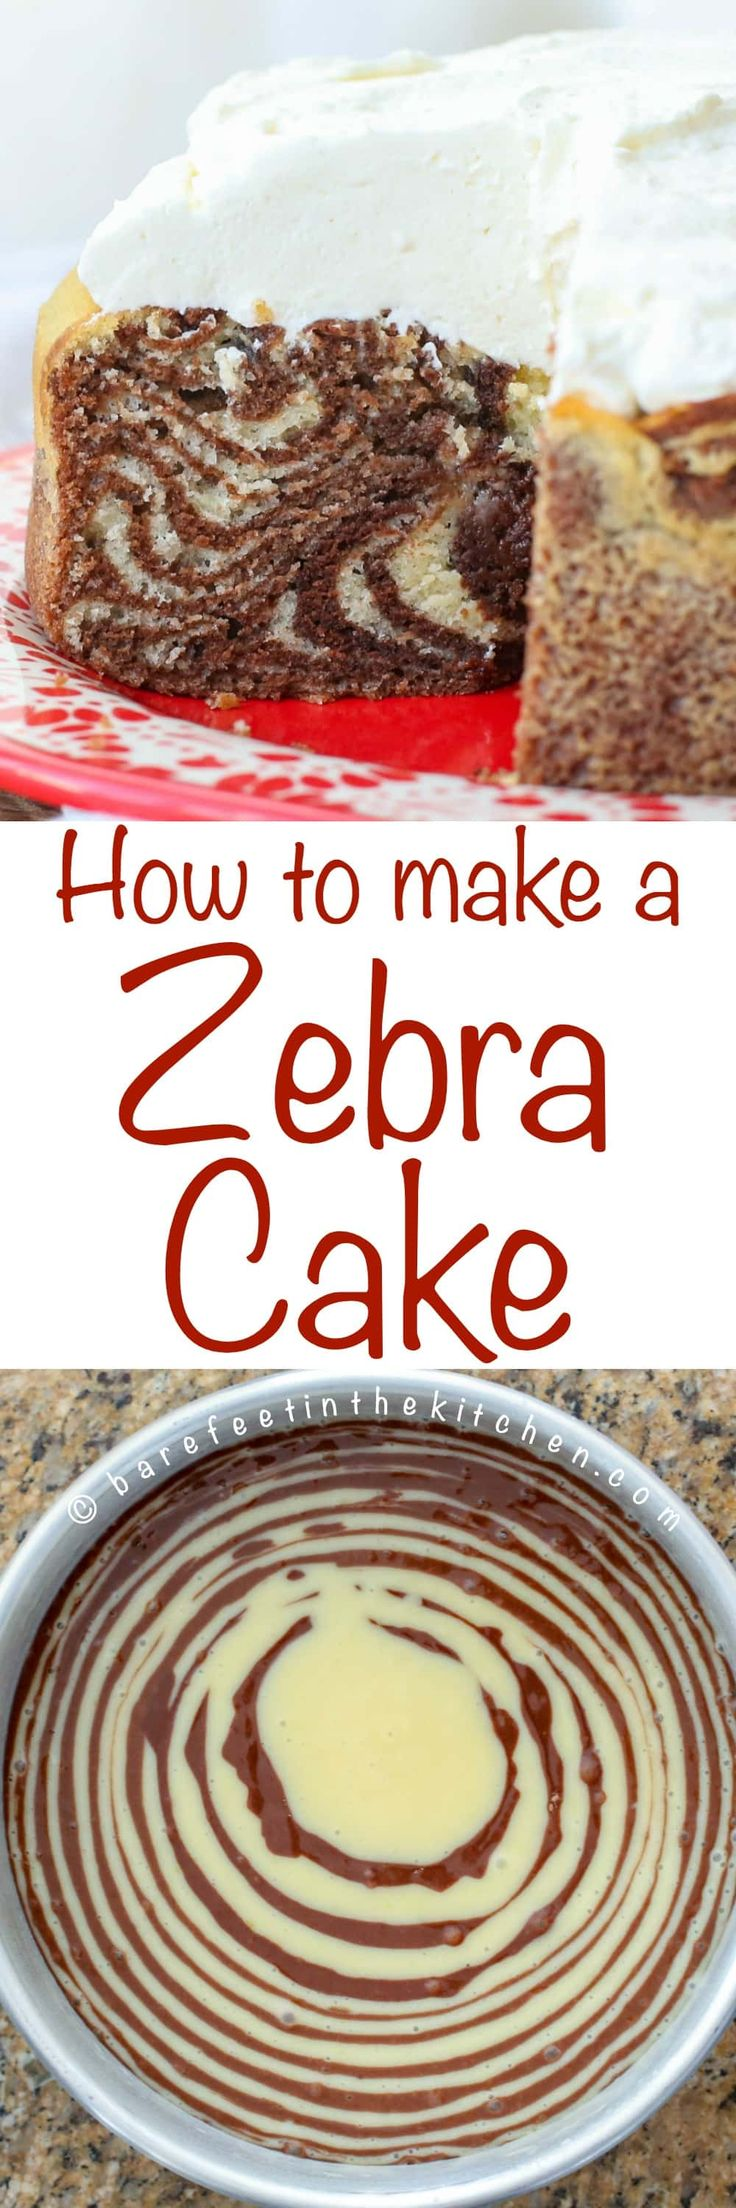 How to make a Zebra Cake! (It's easier than you think!!) get the recipe at barefeetinthekitchen.com